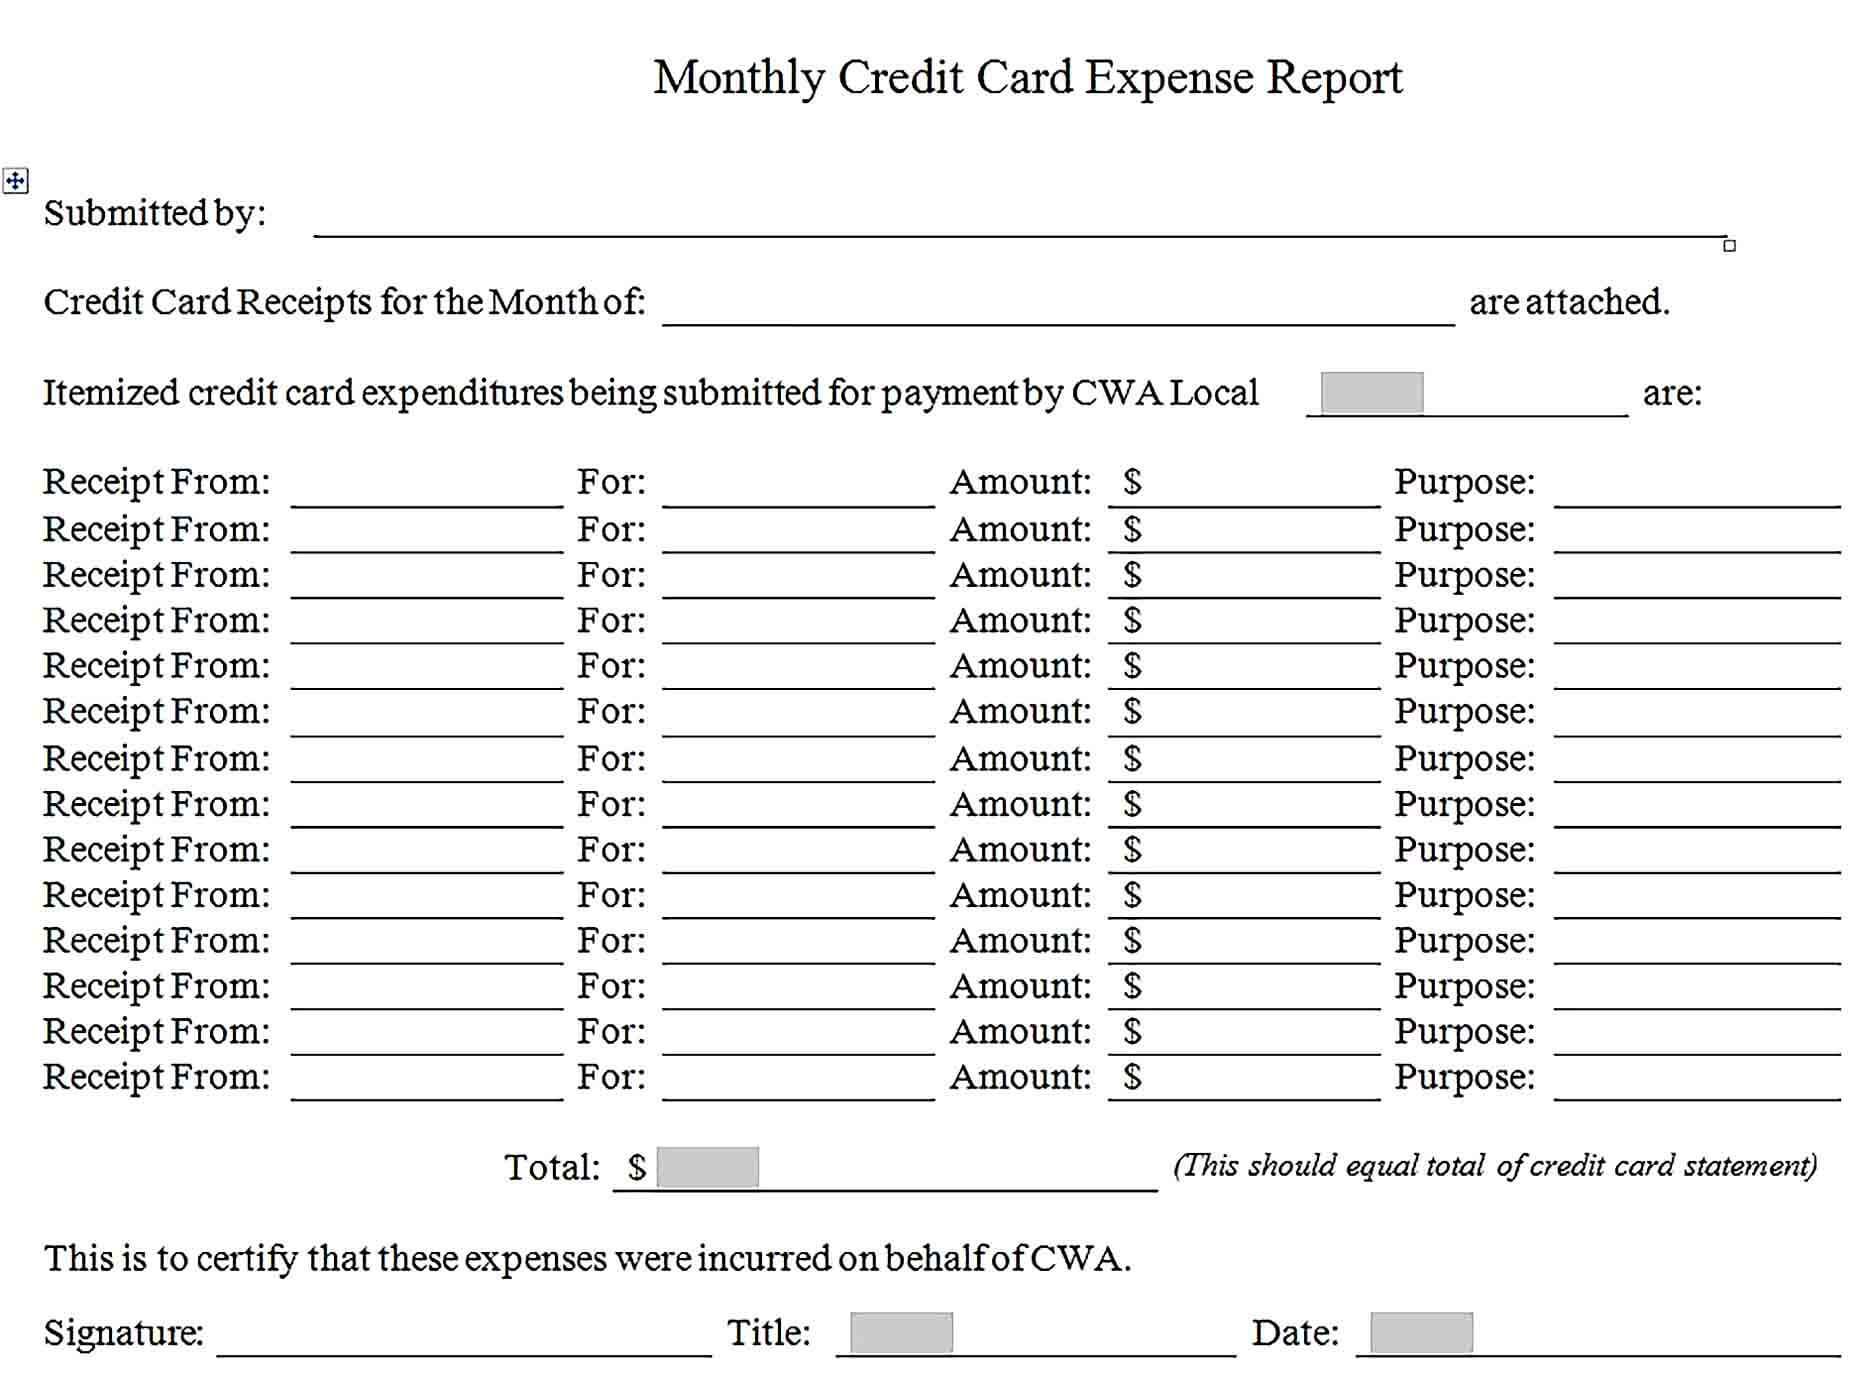 Sample Credit Card Expense Report Template